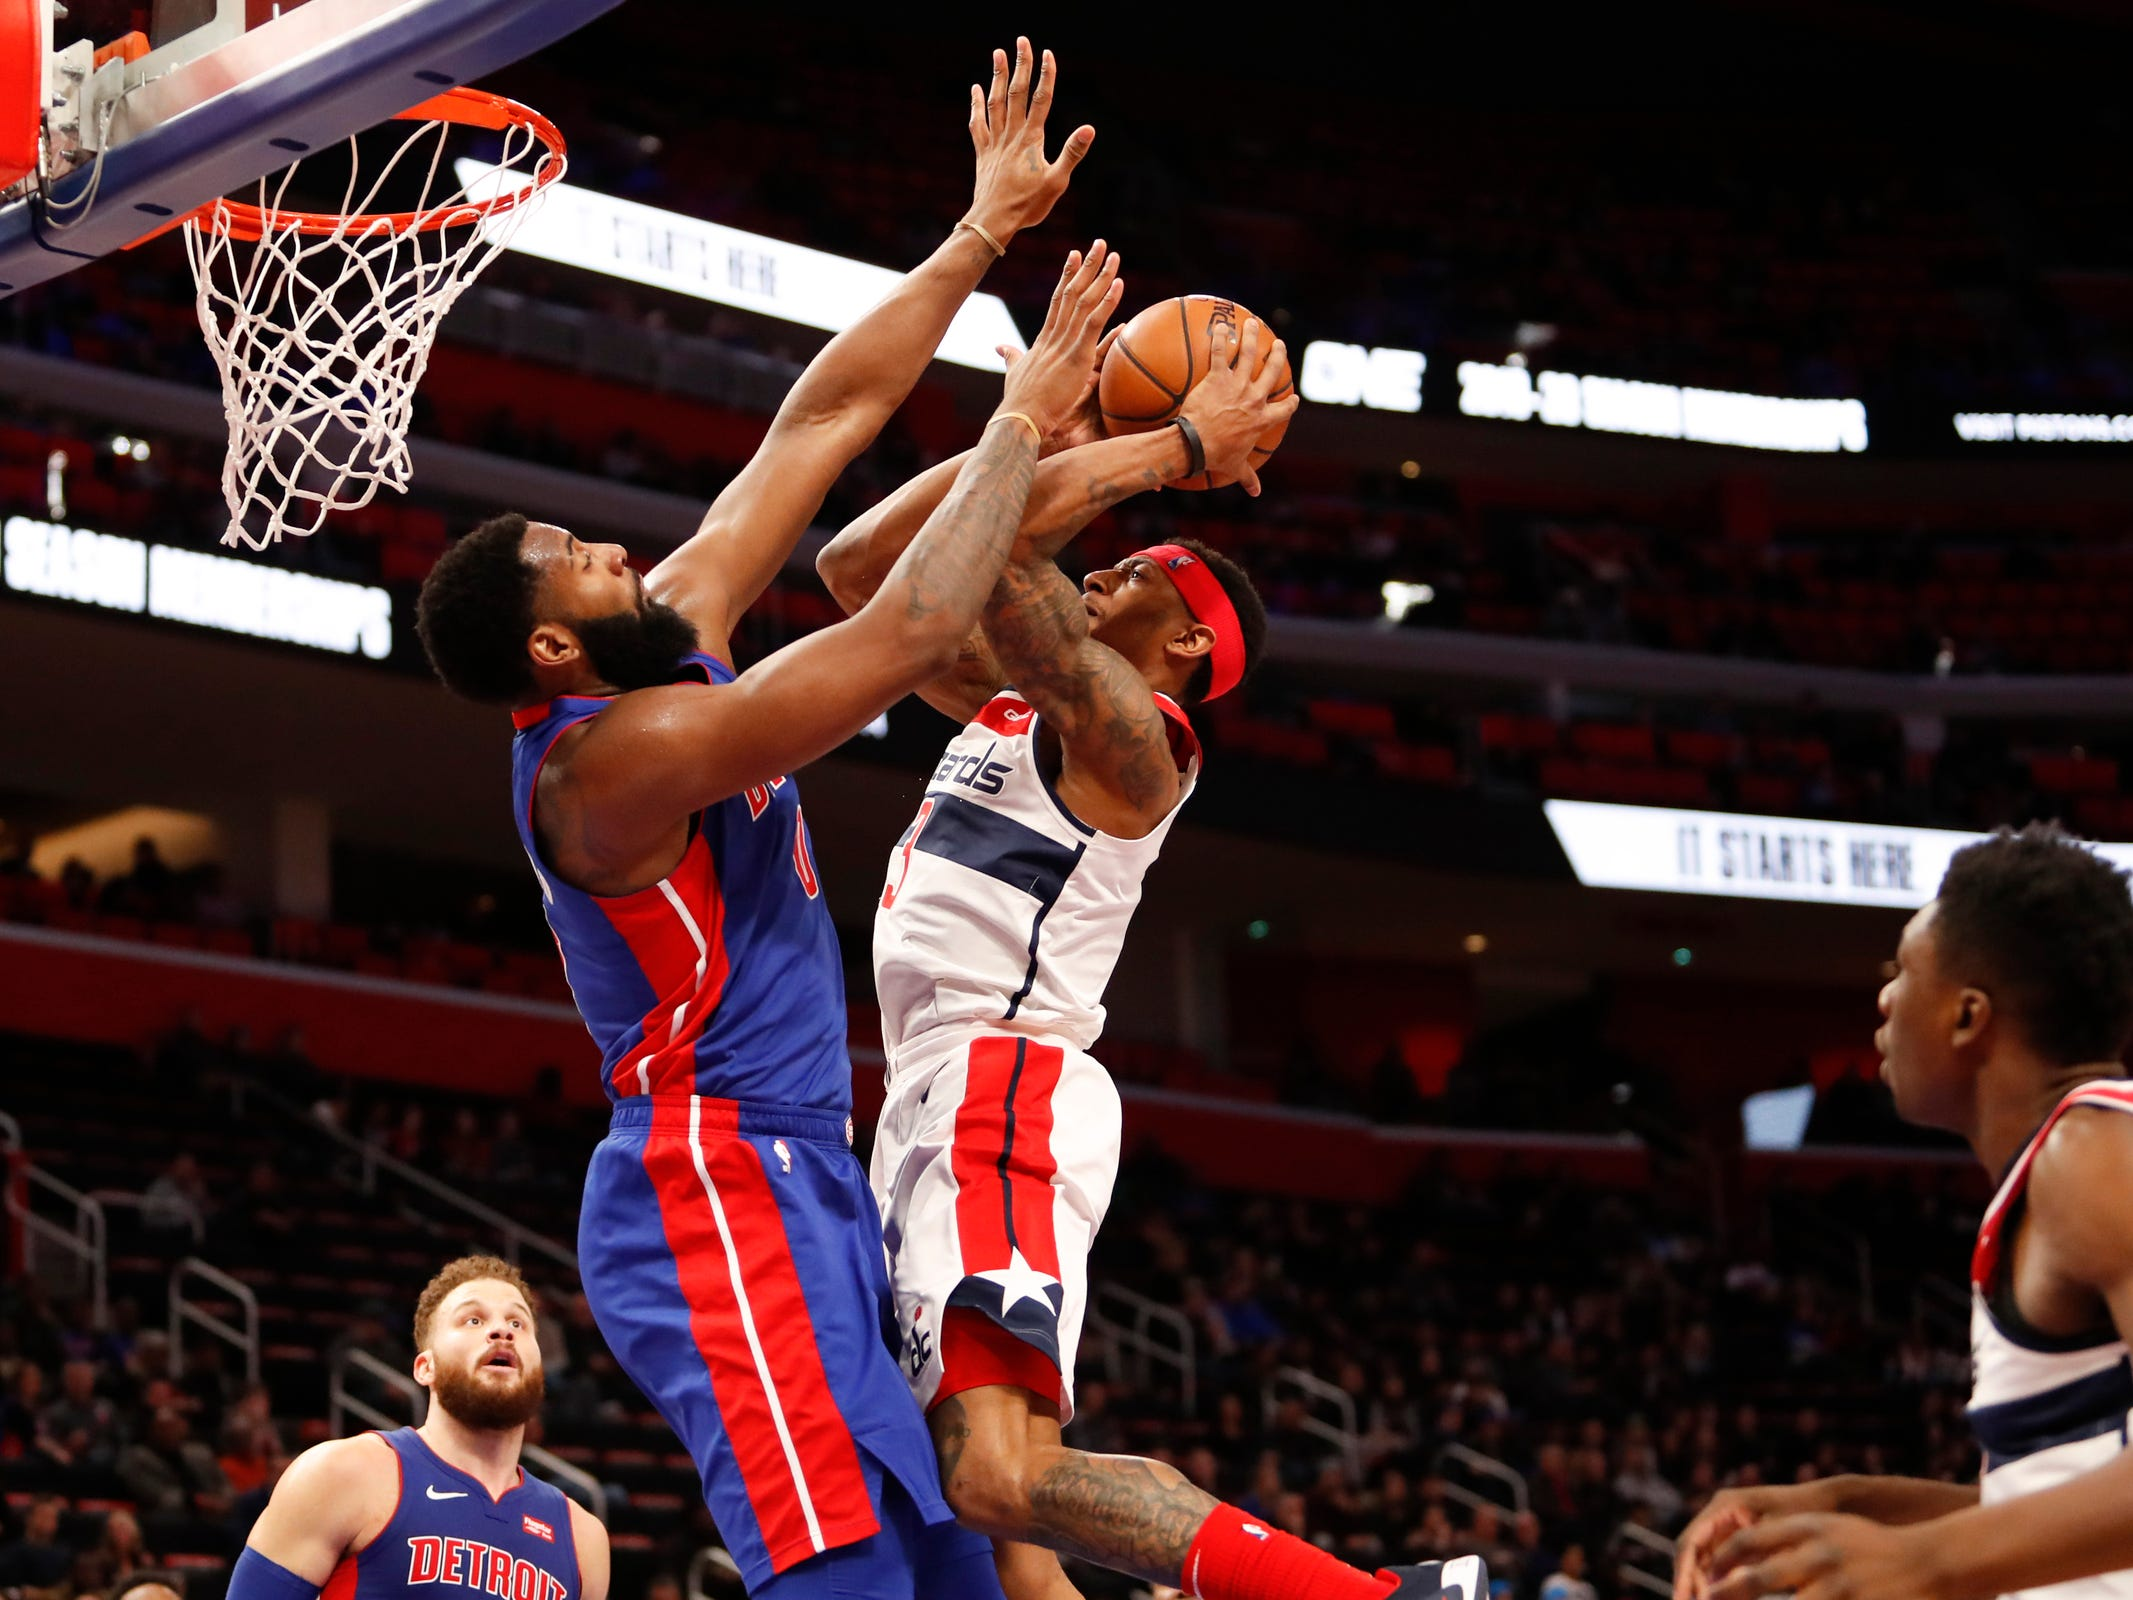 Washington Wizards guard Bradley Beal goes up for a shot against Detroit Pistons center Andre Drummond in the second quarter at Little Caesars Arena, Feb. 11, 2019.